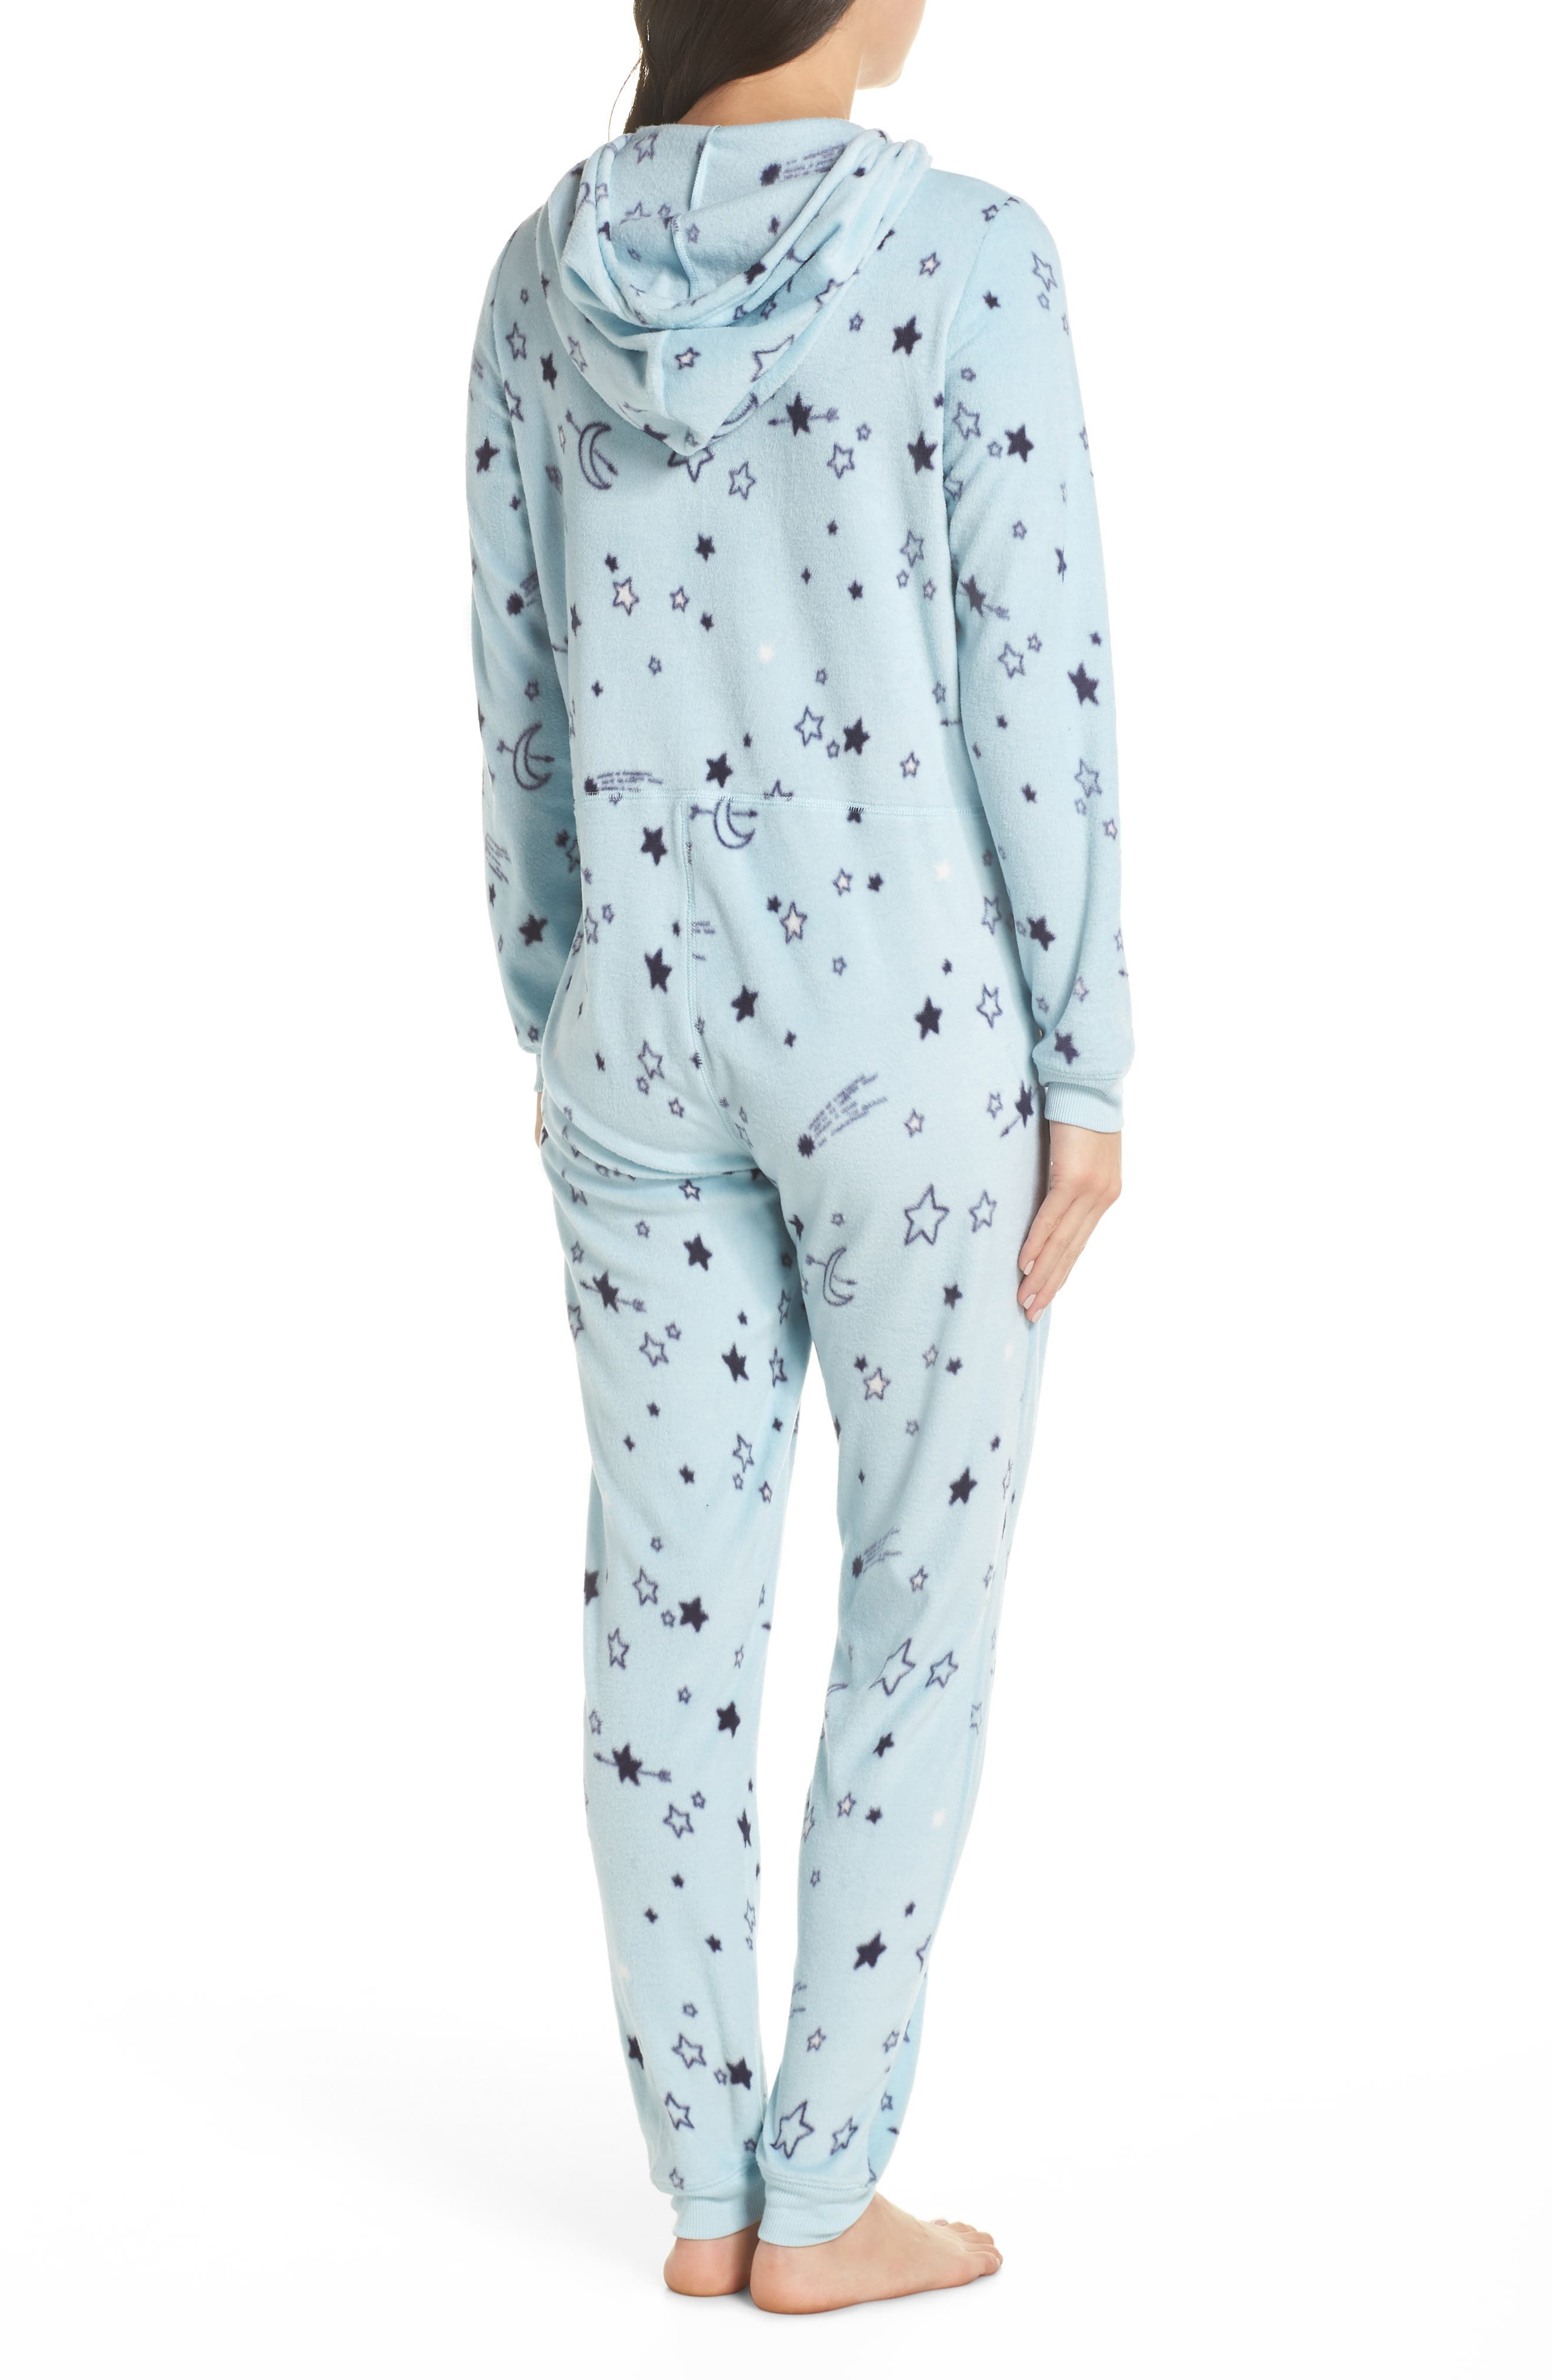 Hooded Pajama Jumpsuit,                             Alternate thumbnail 2, color,                             BLUE OMPHALODES SHOOT 4 STARS